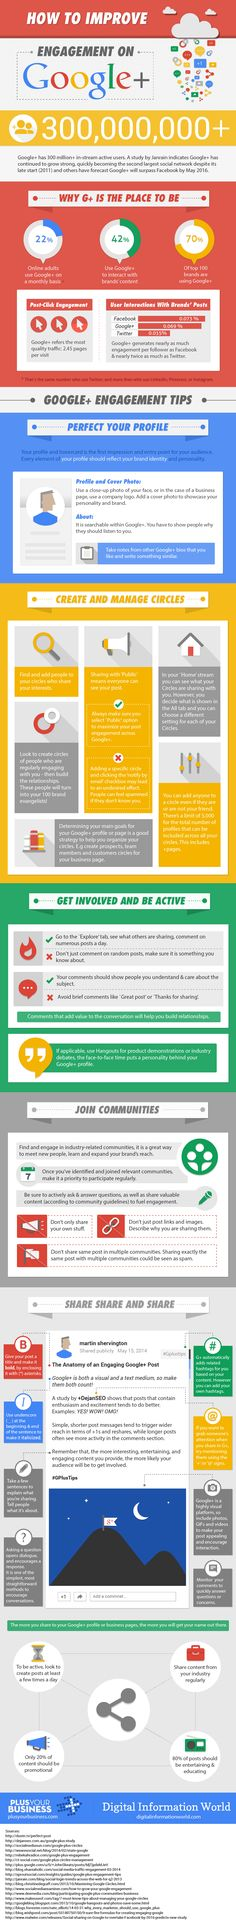 How to Jumpstart Your Google+ Engagement #CrazySocialMediaTips #SocialMediaTips #Google+Tips